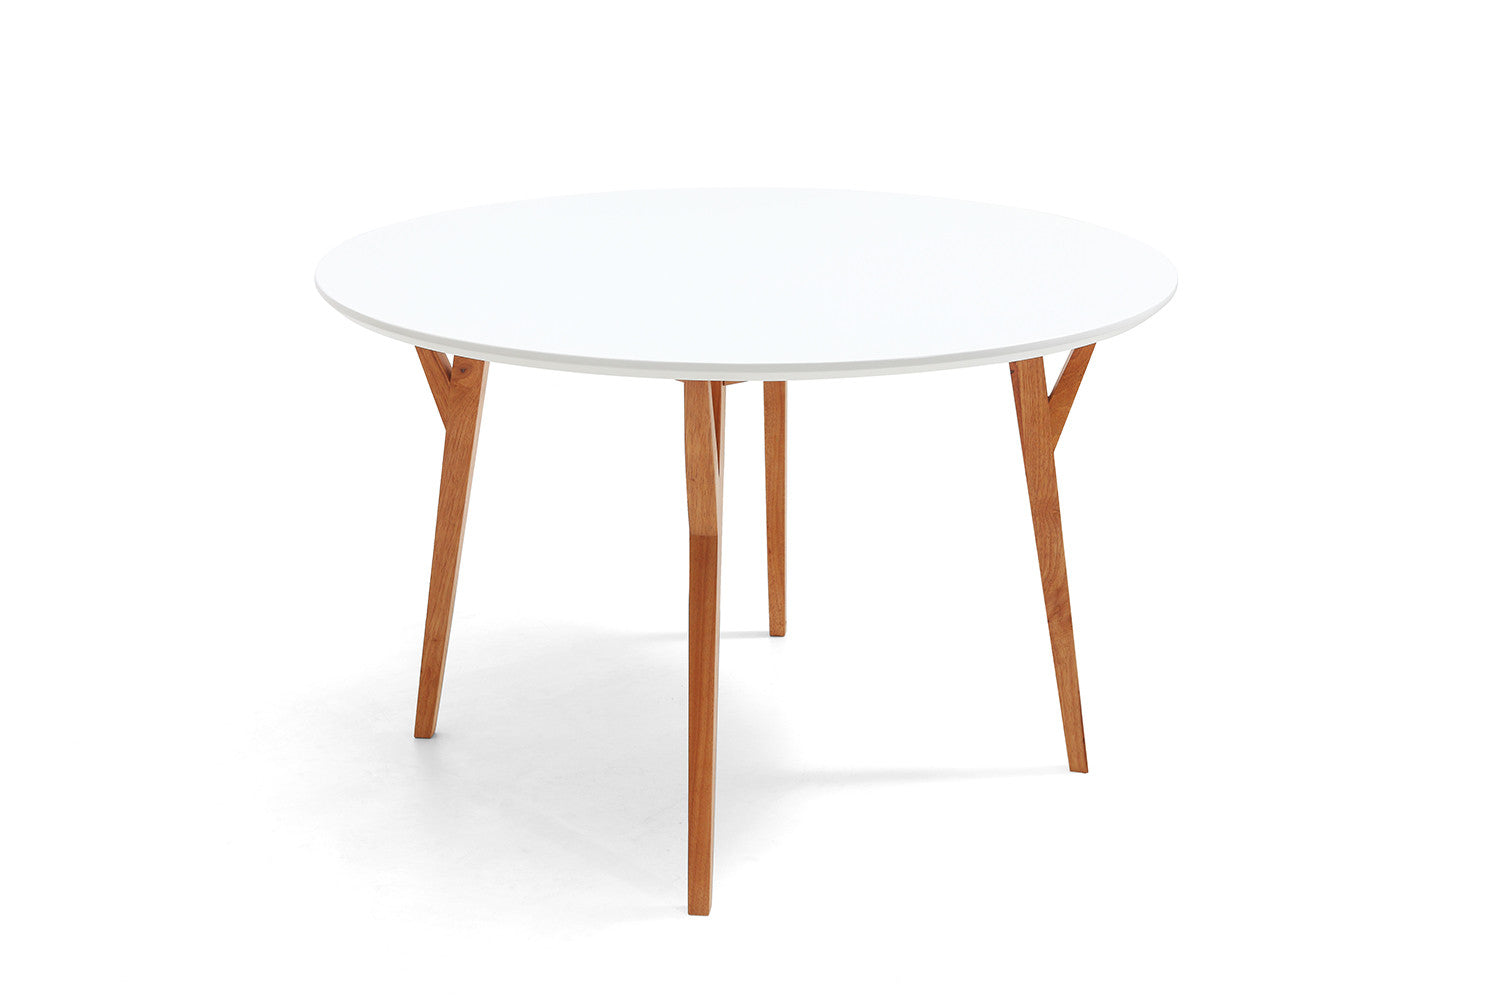 Table de salle manger ronde design scandinave moesa for Table ronde blanche rallonge